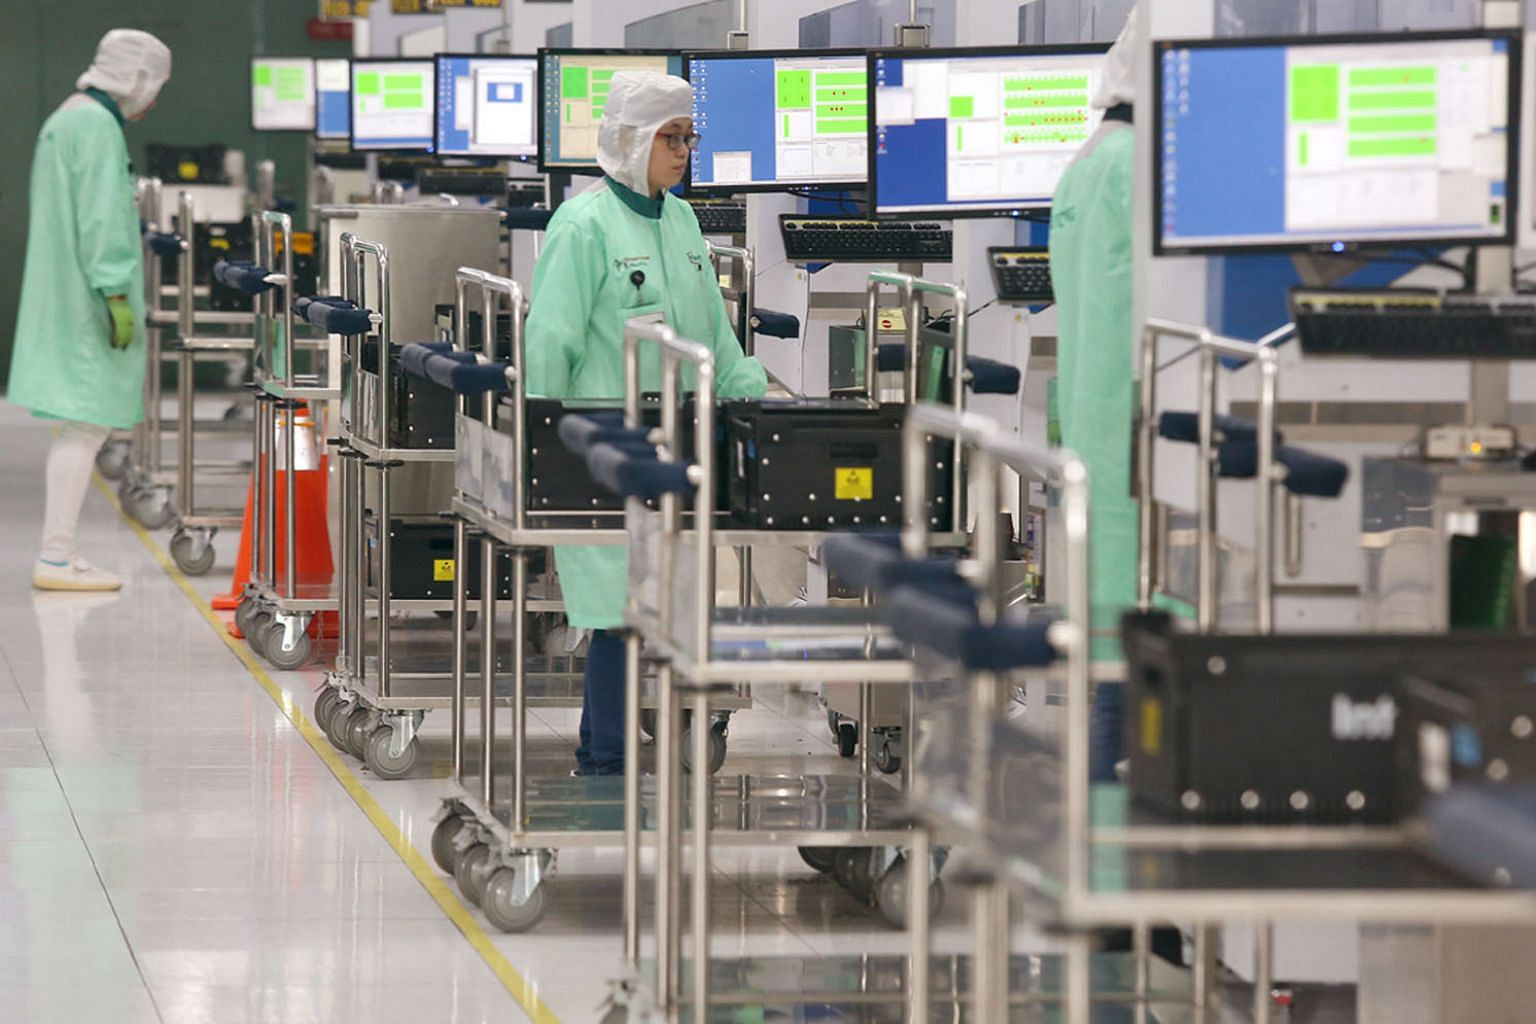 Manufacturing was led by a 48 per cent jump in electronics output year on year. Within the electronics cluster, the semiconductors segment rose 69.1 per cent, according to the EDB.